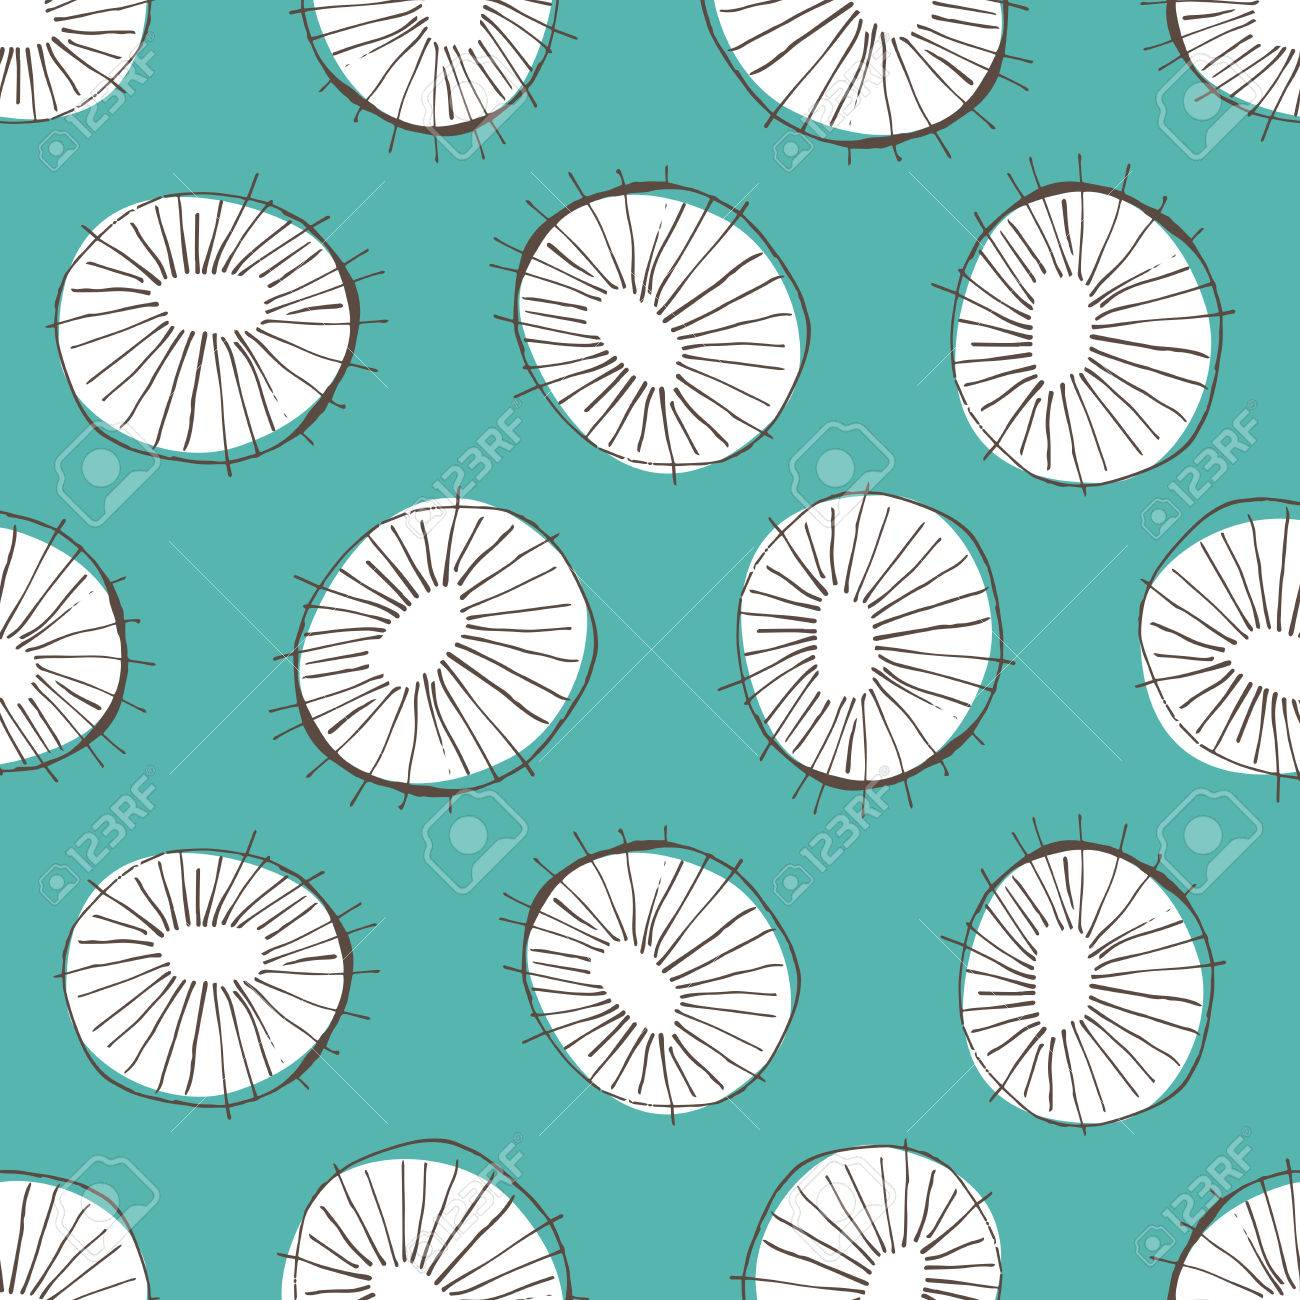 Seamless Vector Pattern With 50s Style Mid Century Modern Circle Drawings Repeating Background For